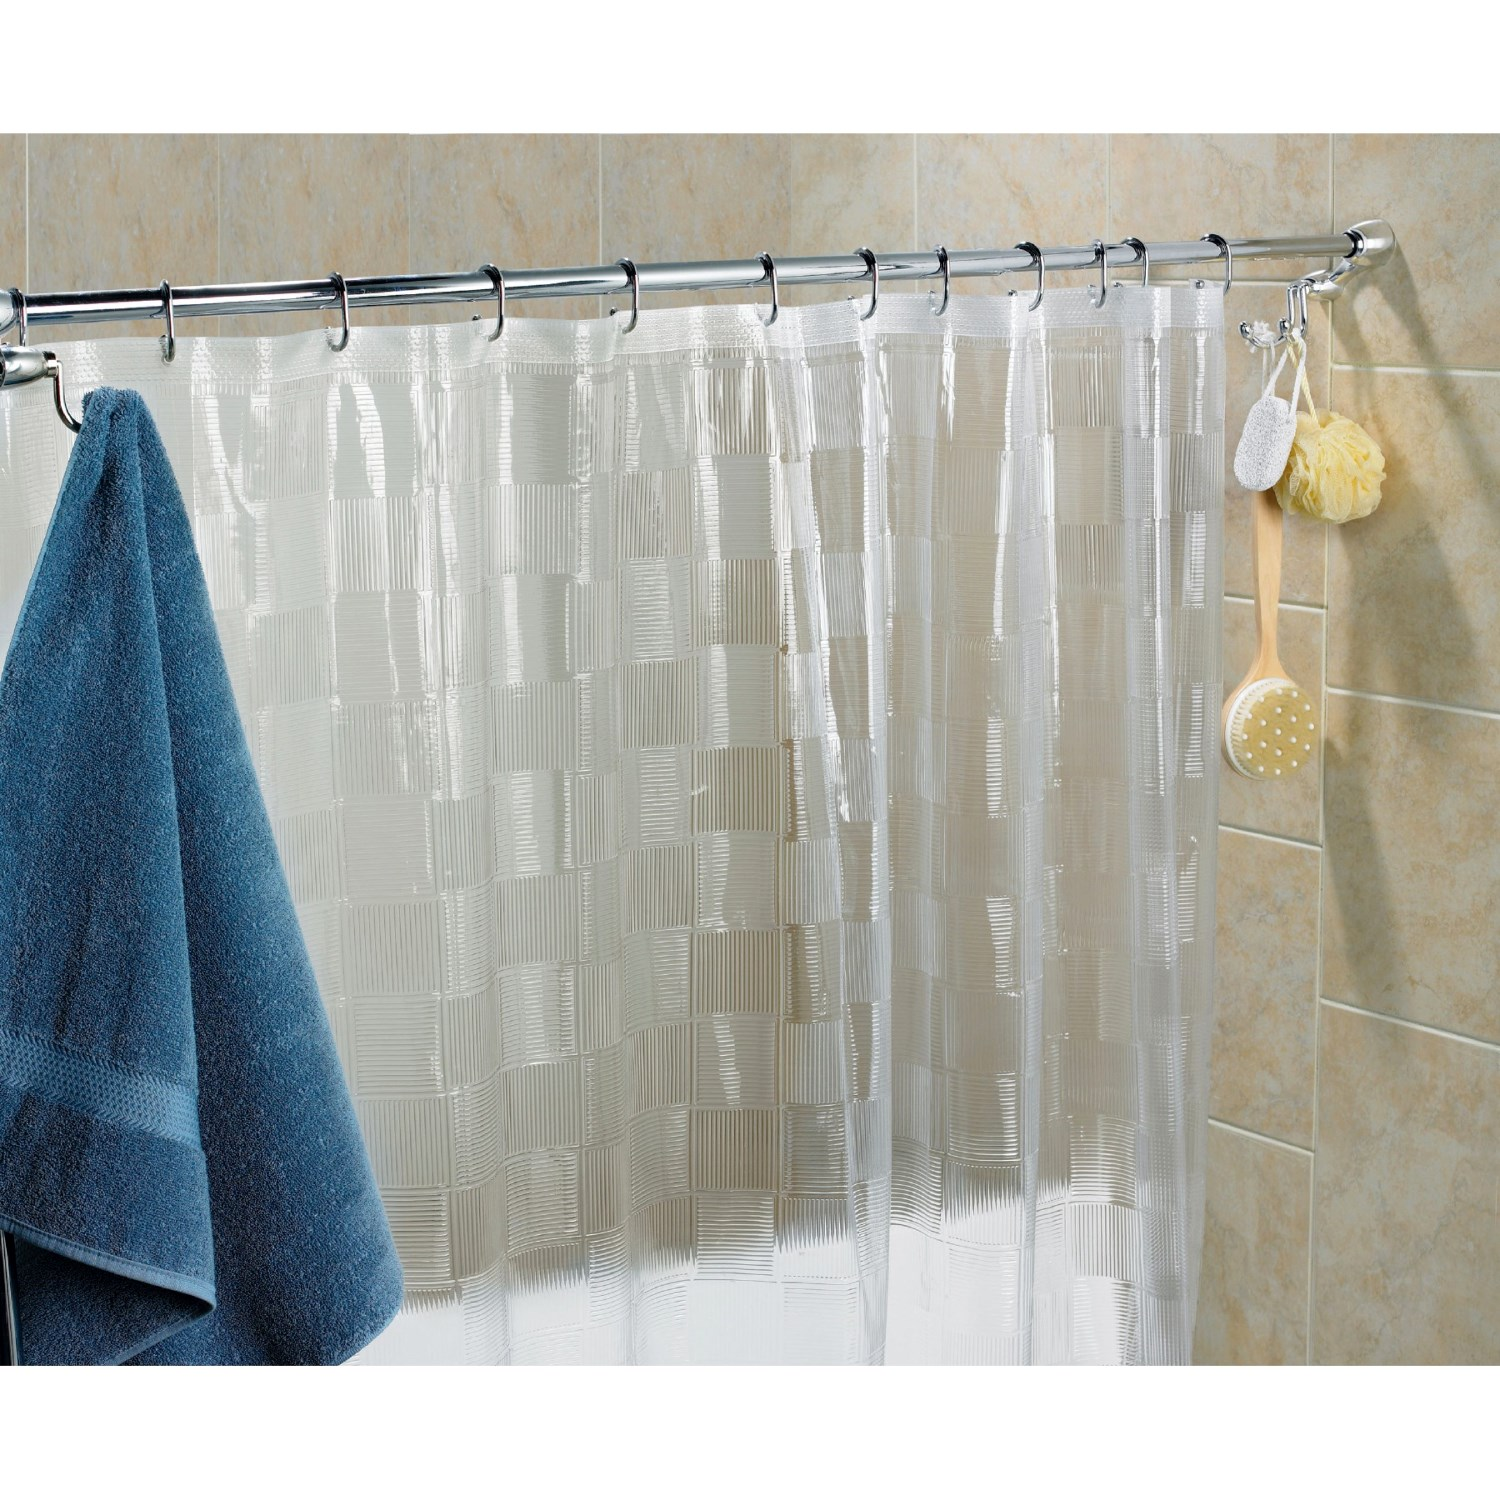 Polder home tools una shower curtain rod 1044t save 52 for Shower curtain savers